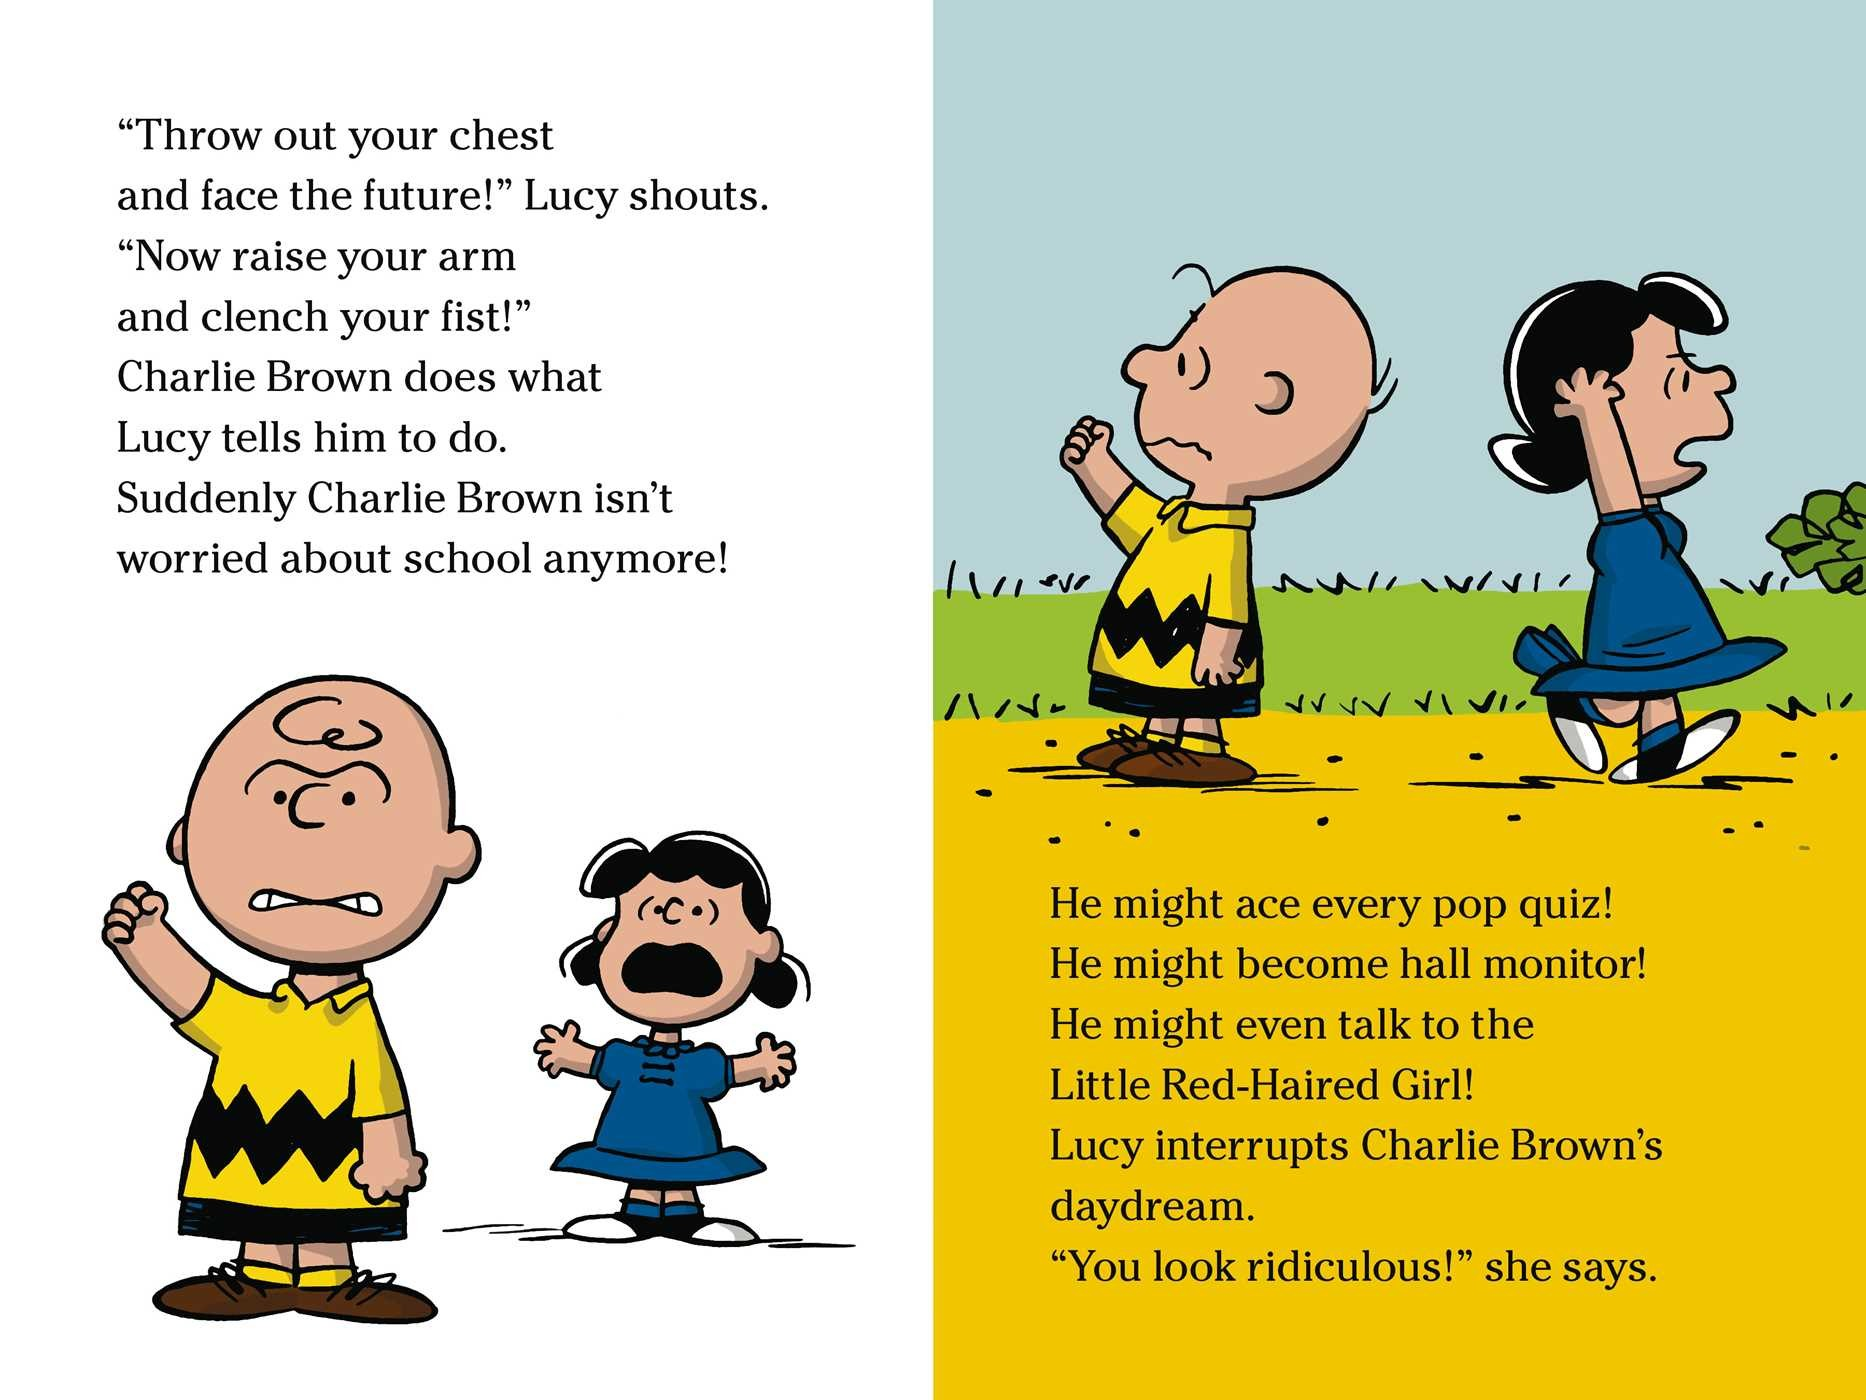 Time for school charlie brown 9781481436052.in02